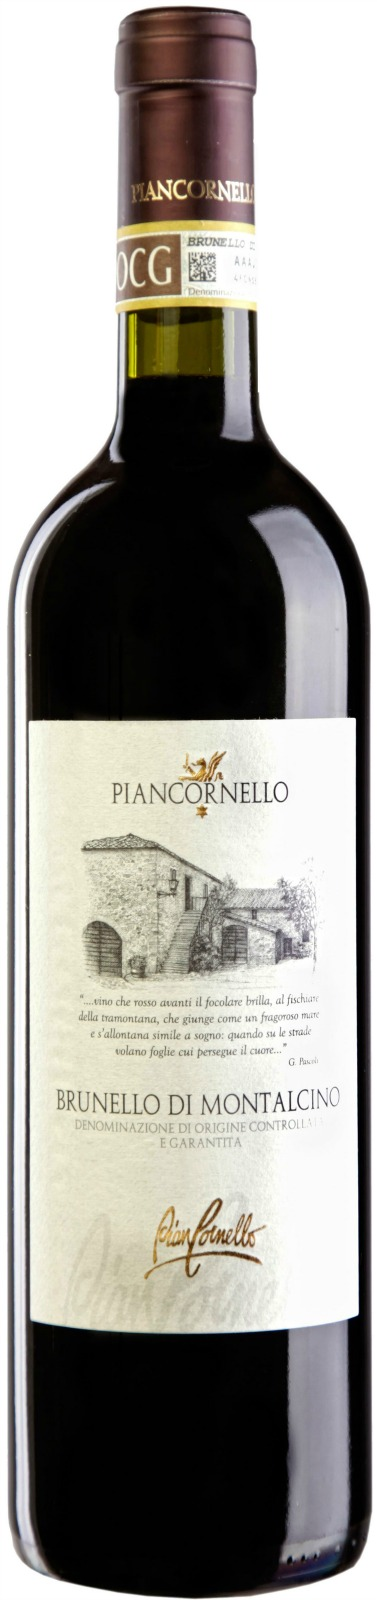 Piancornello Brunello di Montalcino 2013, 750ml (VN96, WA93) from The BPW - Merchants of rare and fine wines.